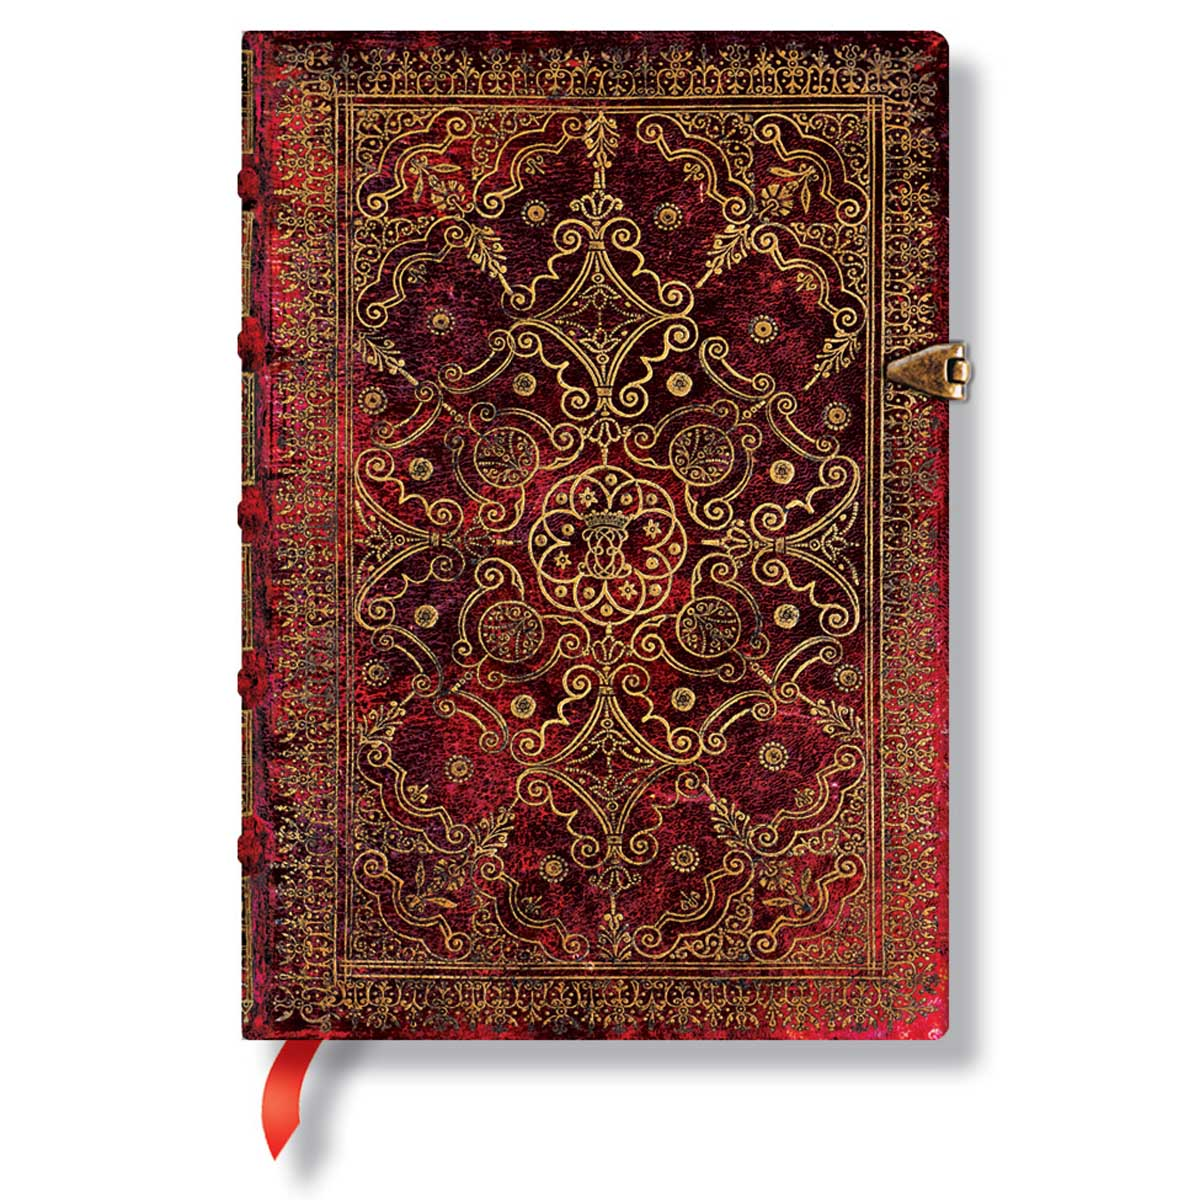 Paperblanks Equinoxe Carmine Midi 5 x 7 Inch Journal